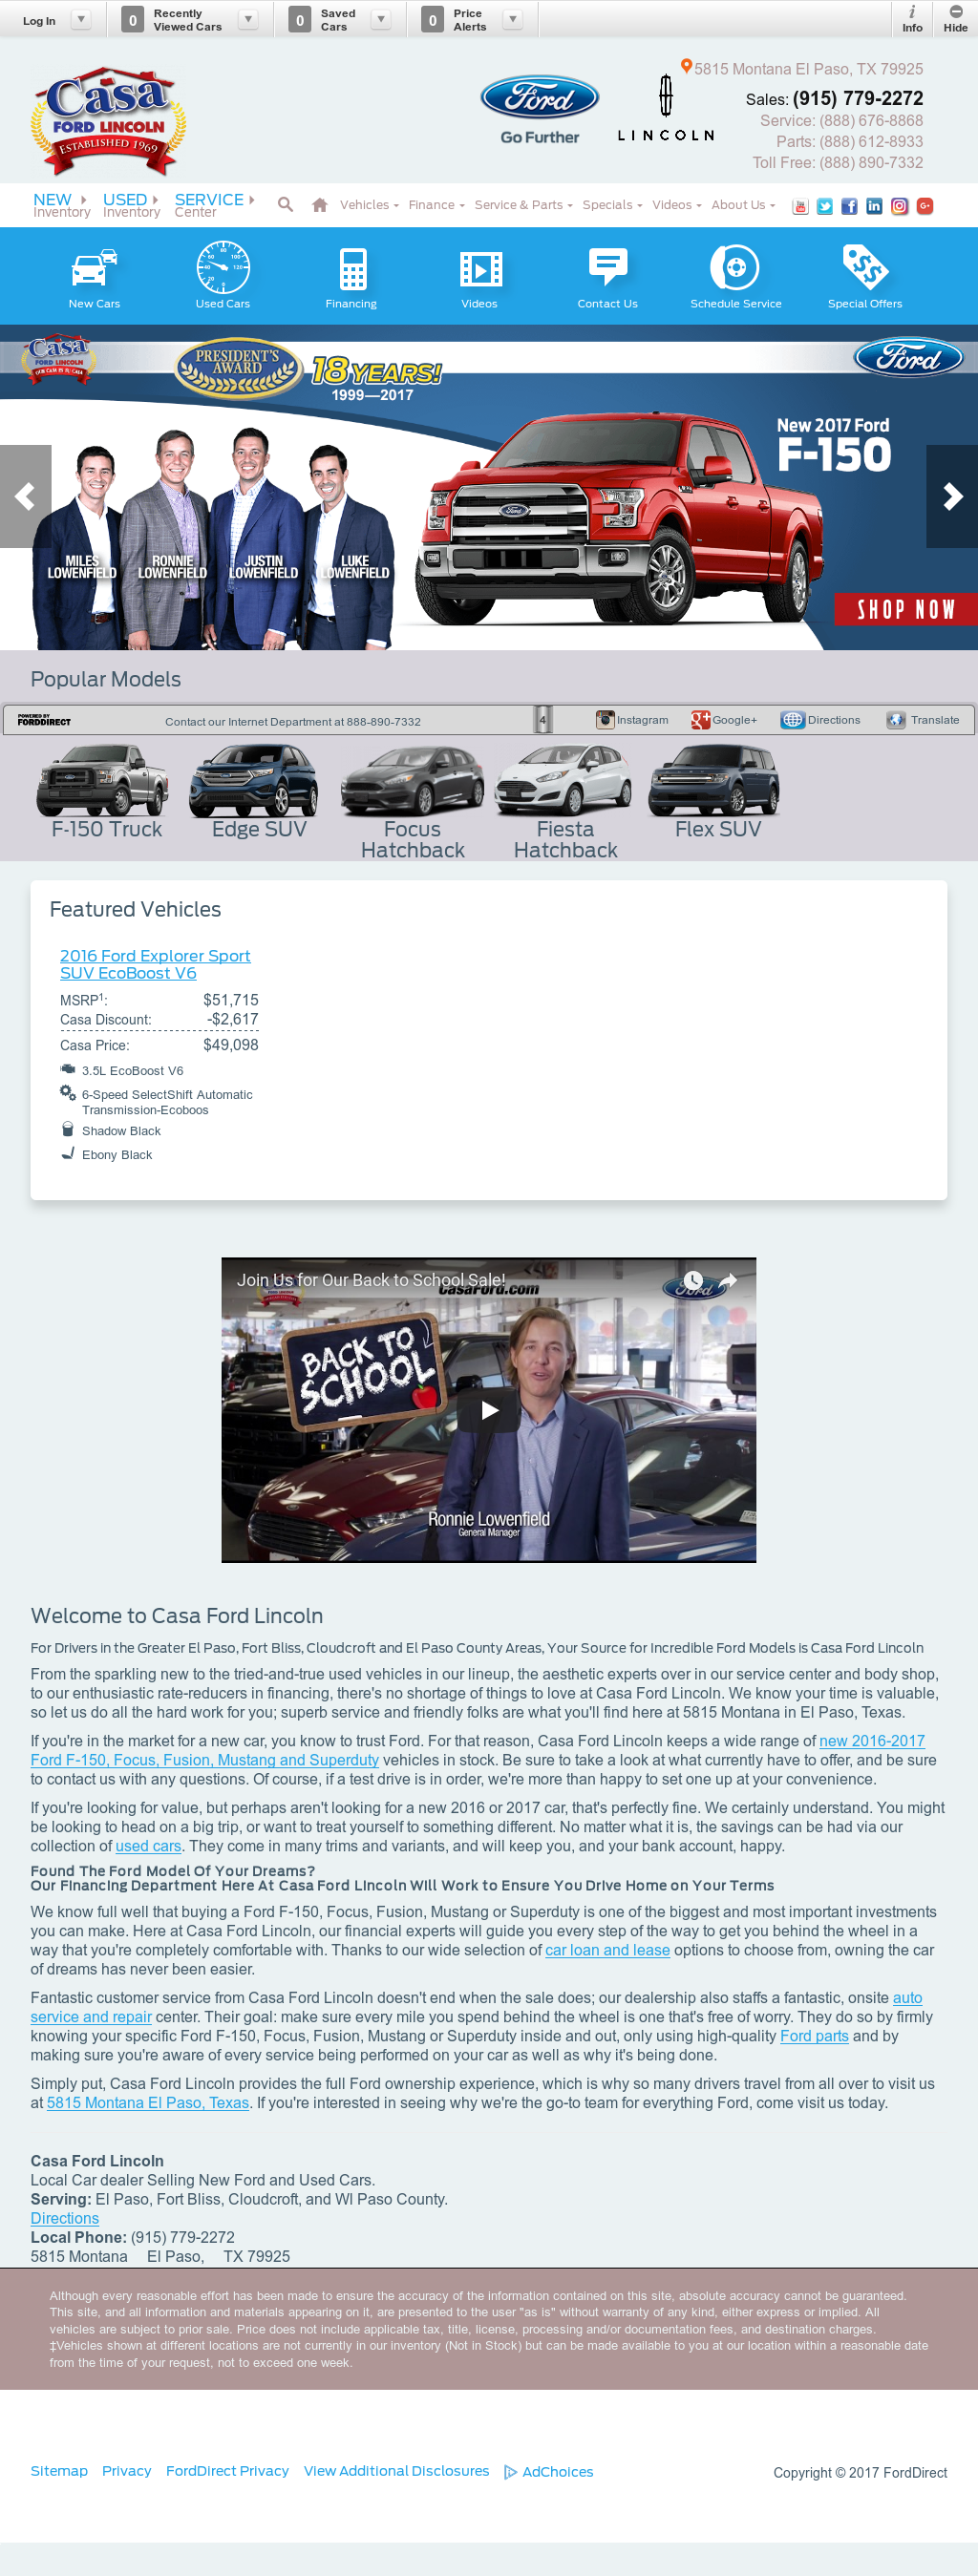 Casa Ford El Paso Tx >> Casa Ford Lincoln Competitors Revenue And Employees Owler